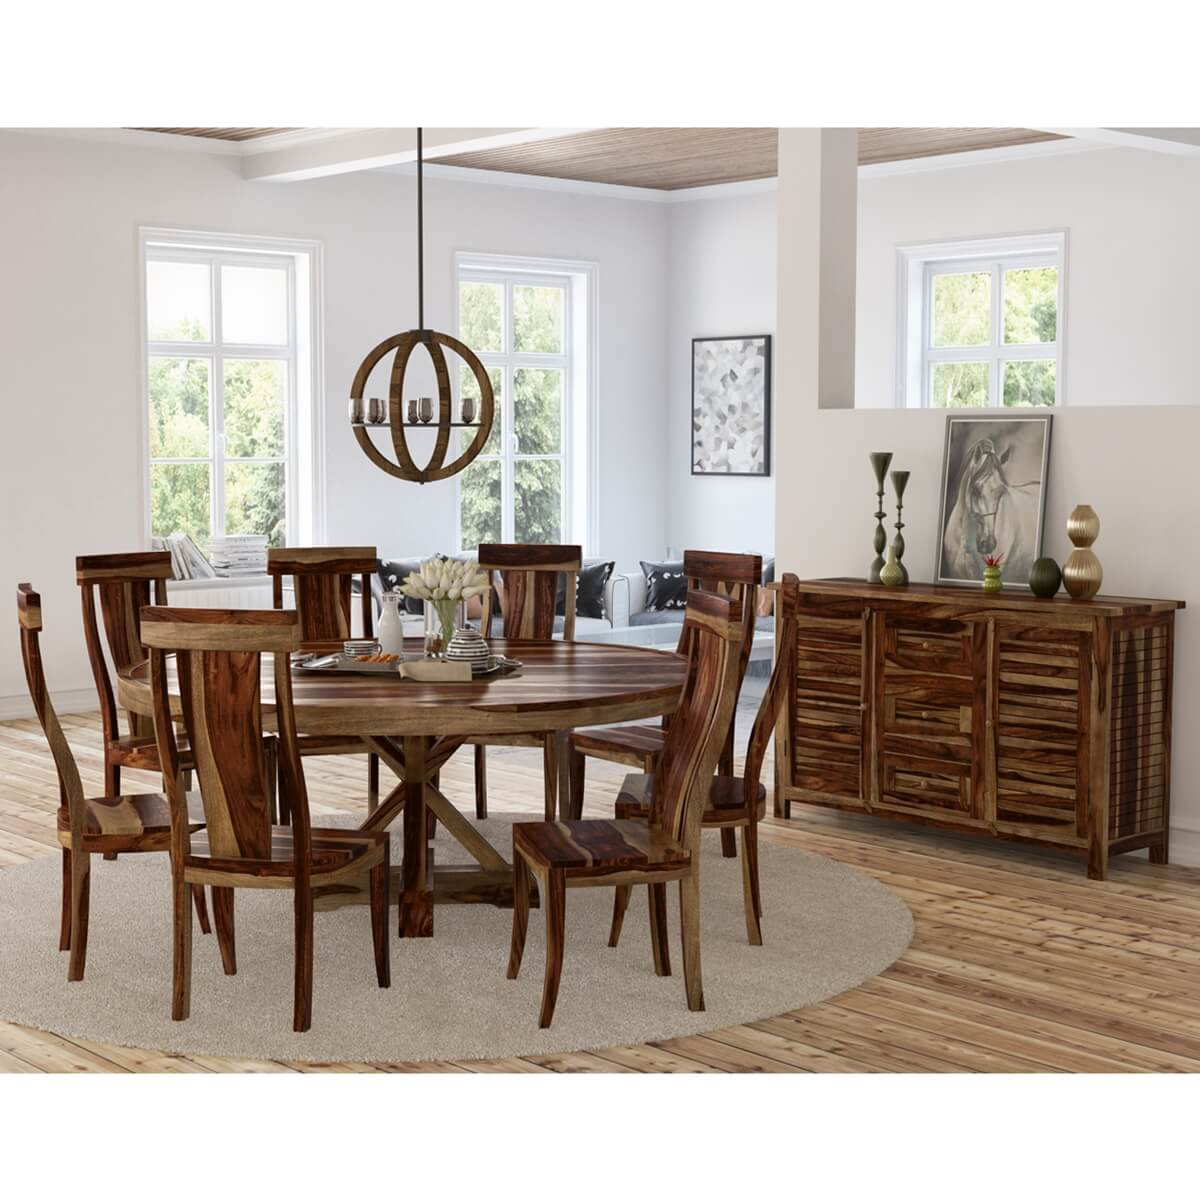 Bedford Rustic Solid Wood X Pedestal 10 Piece Round Dining Room Set Pertaining To Current Bedfo 3 Piece Dining Sets (View 6 of 20)